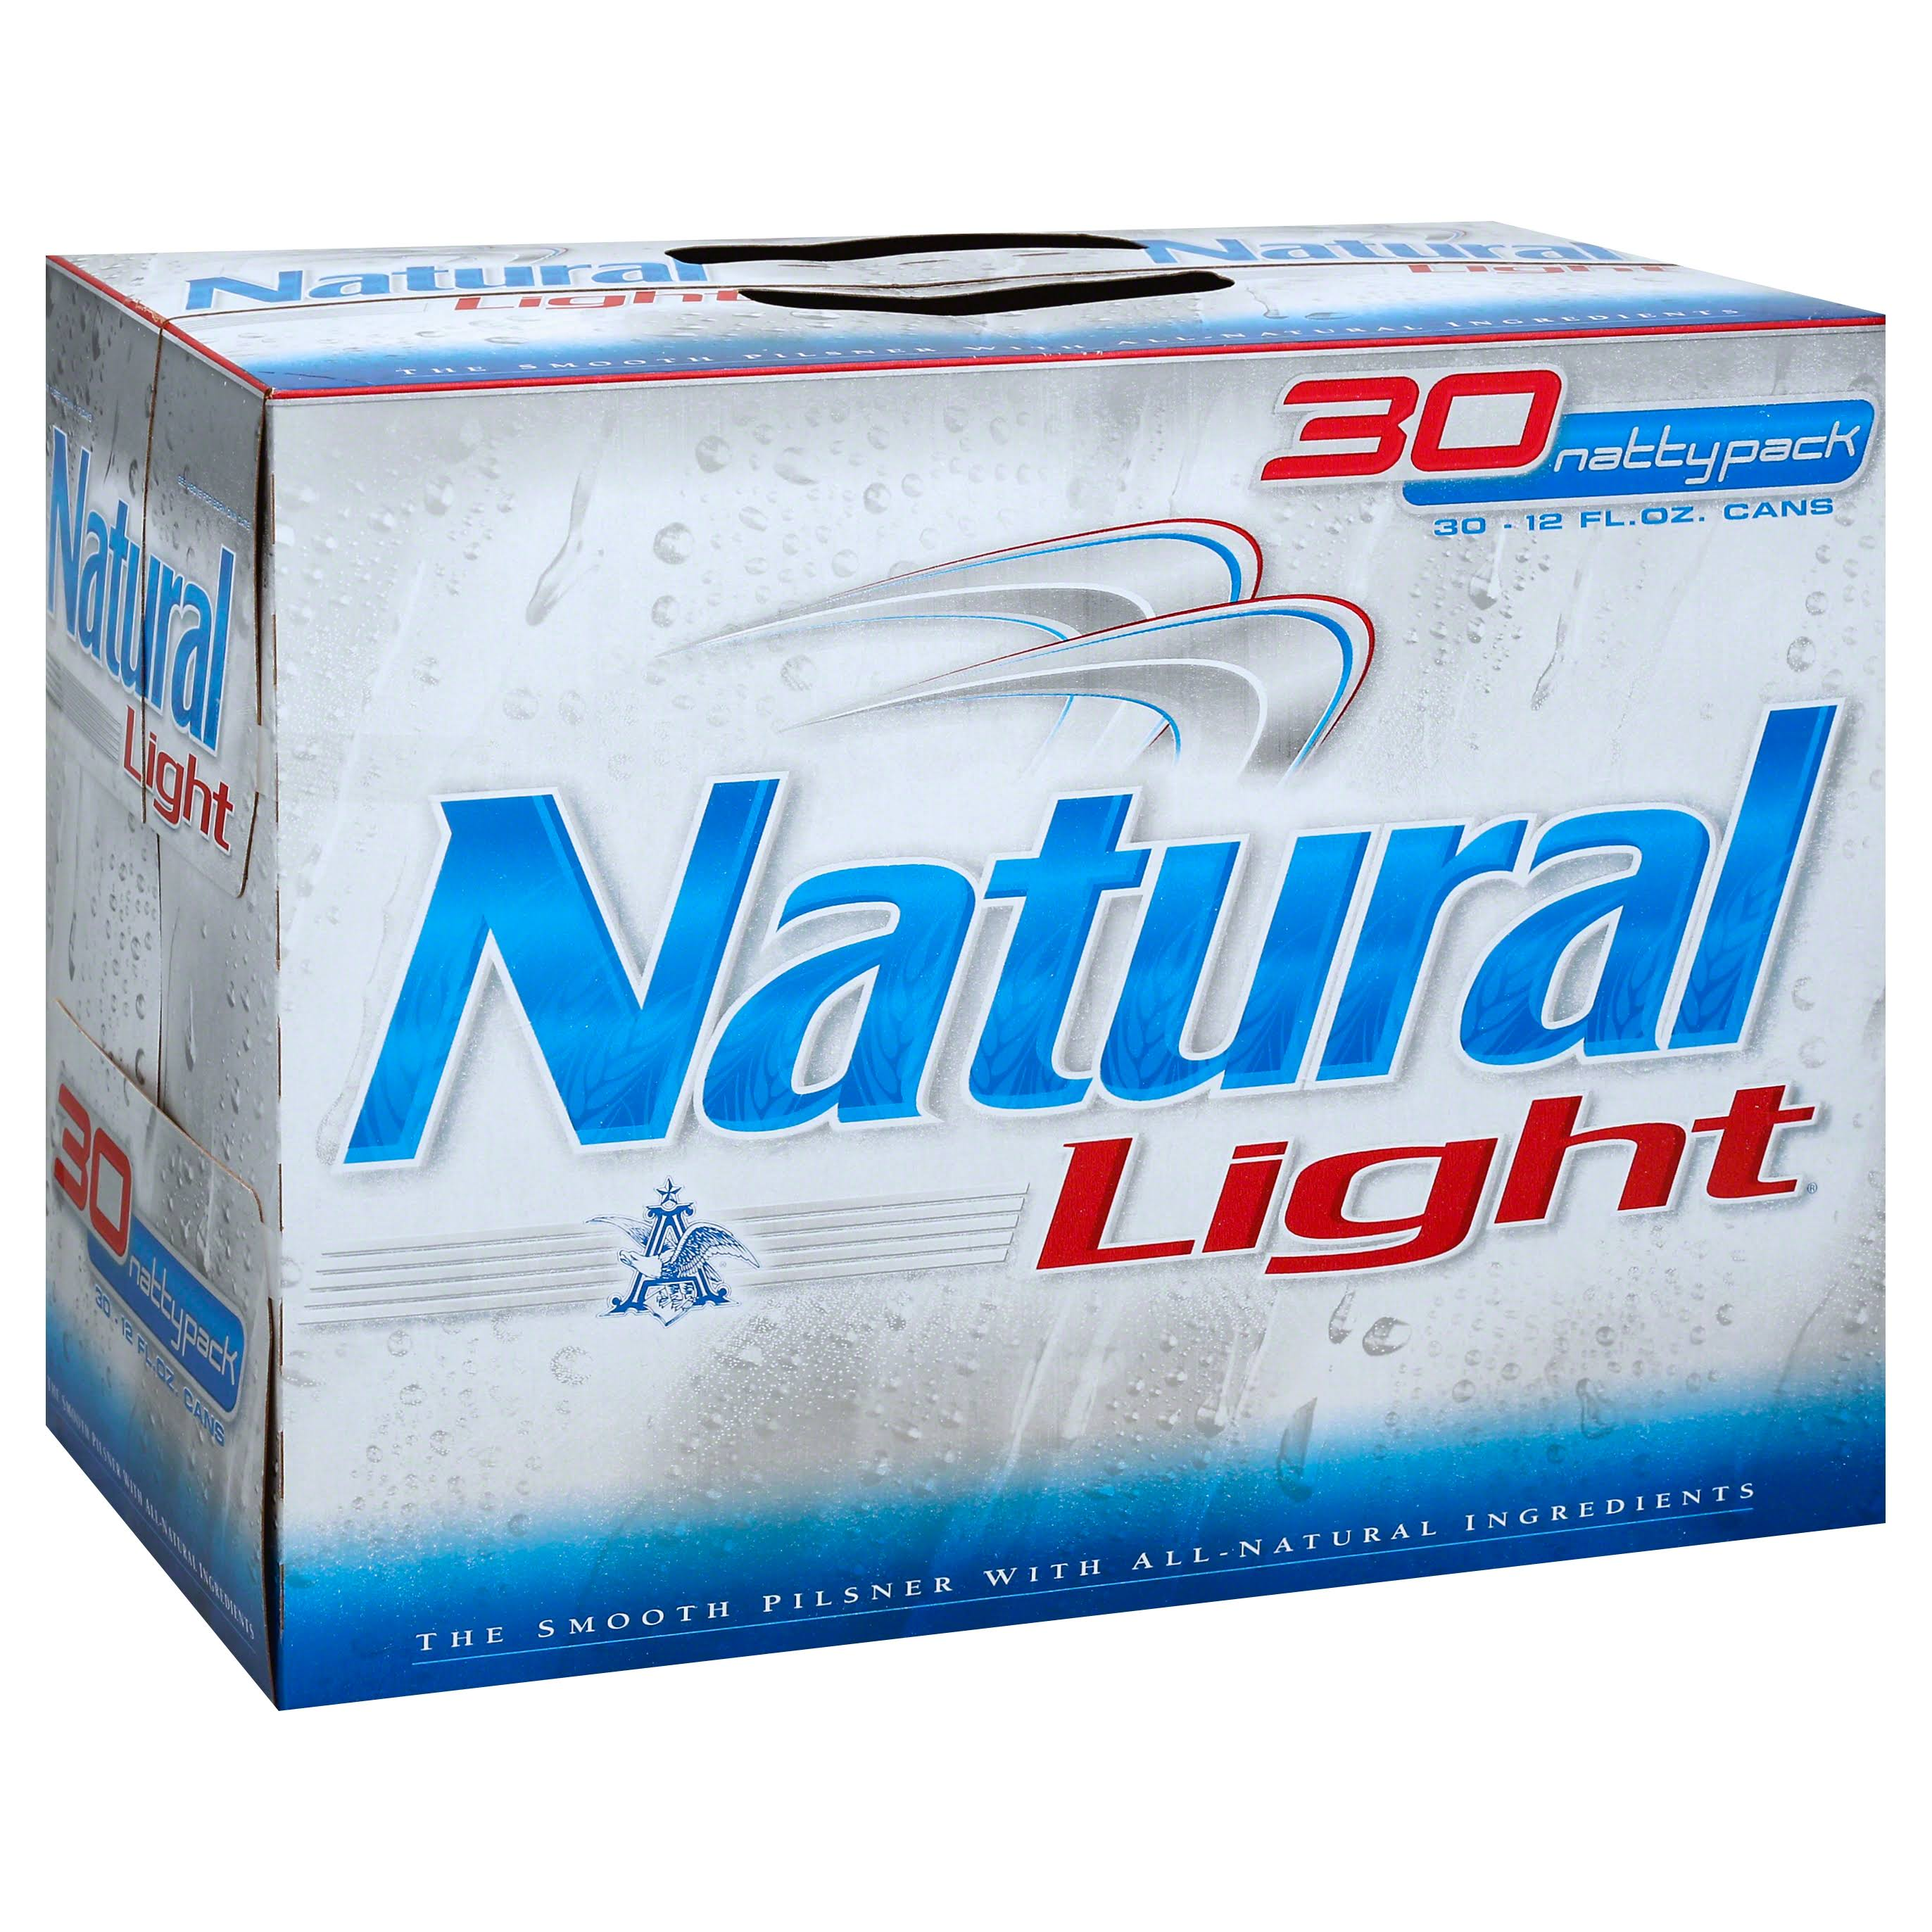 Natural Light Beer, Pilsner, Natty Pack - 30 pack, 12 fl oz cans